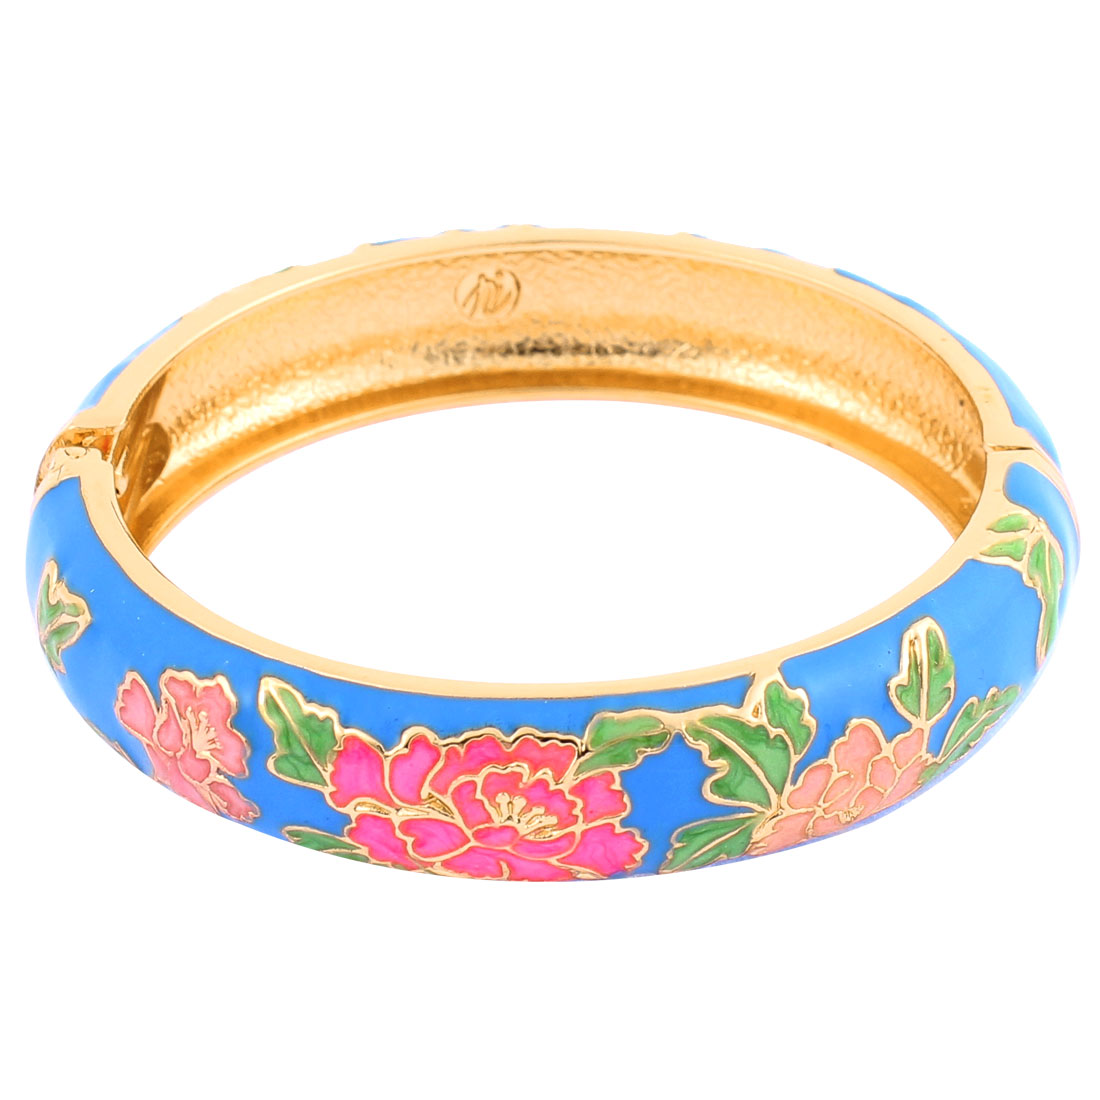 Lady Party Jewelry Hinge Wrist Decor Wide Enamel Bracelet Bangle Blue